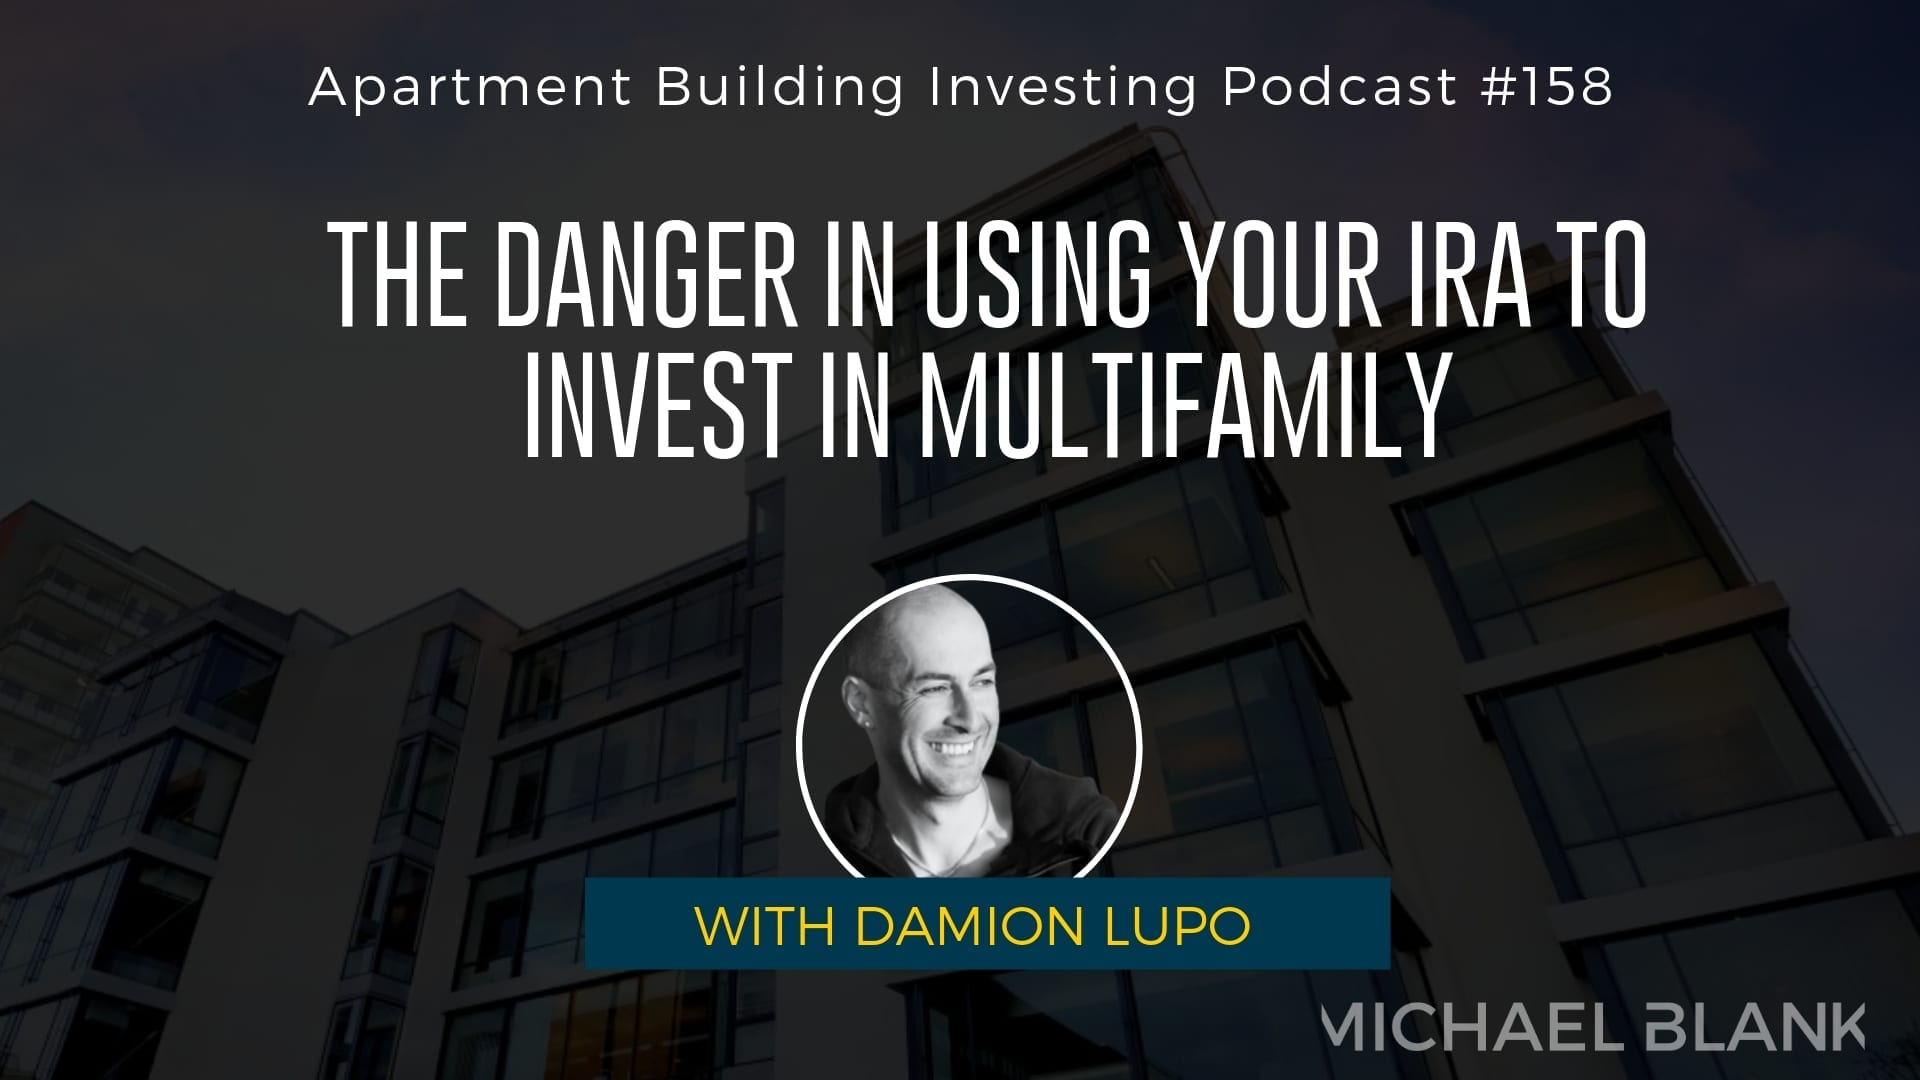 MB 158: The Danger in Using Your IRA to Invest in Multifamily – With Damion Lupo